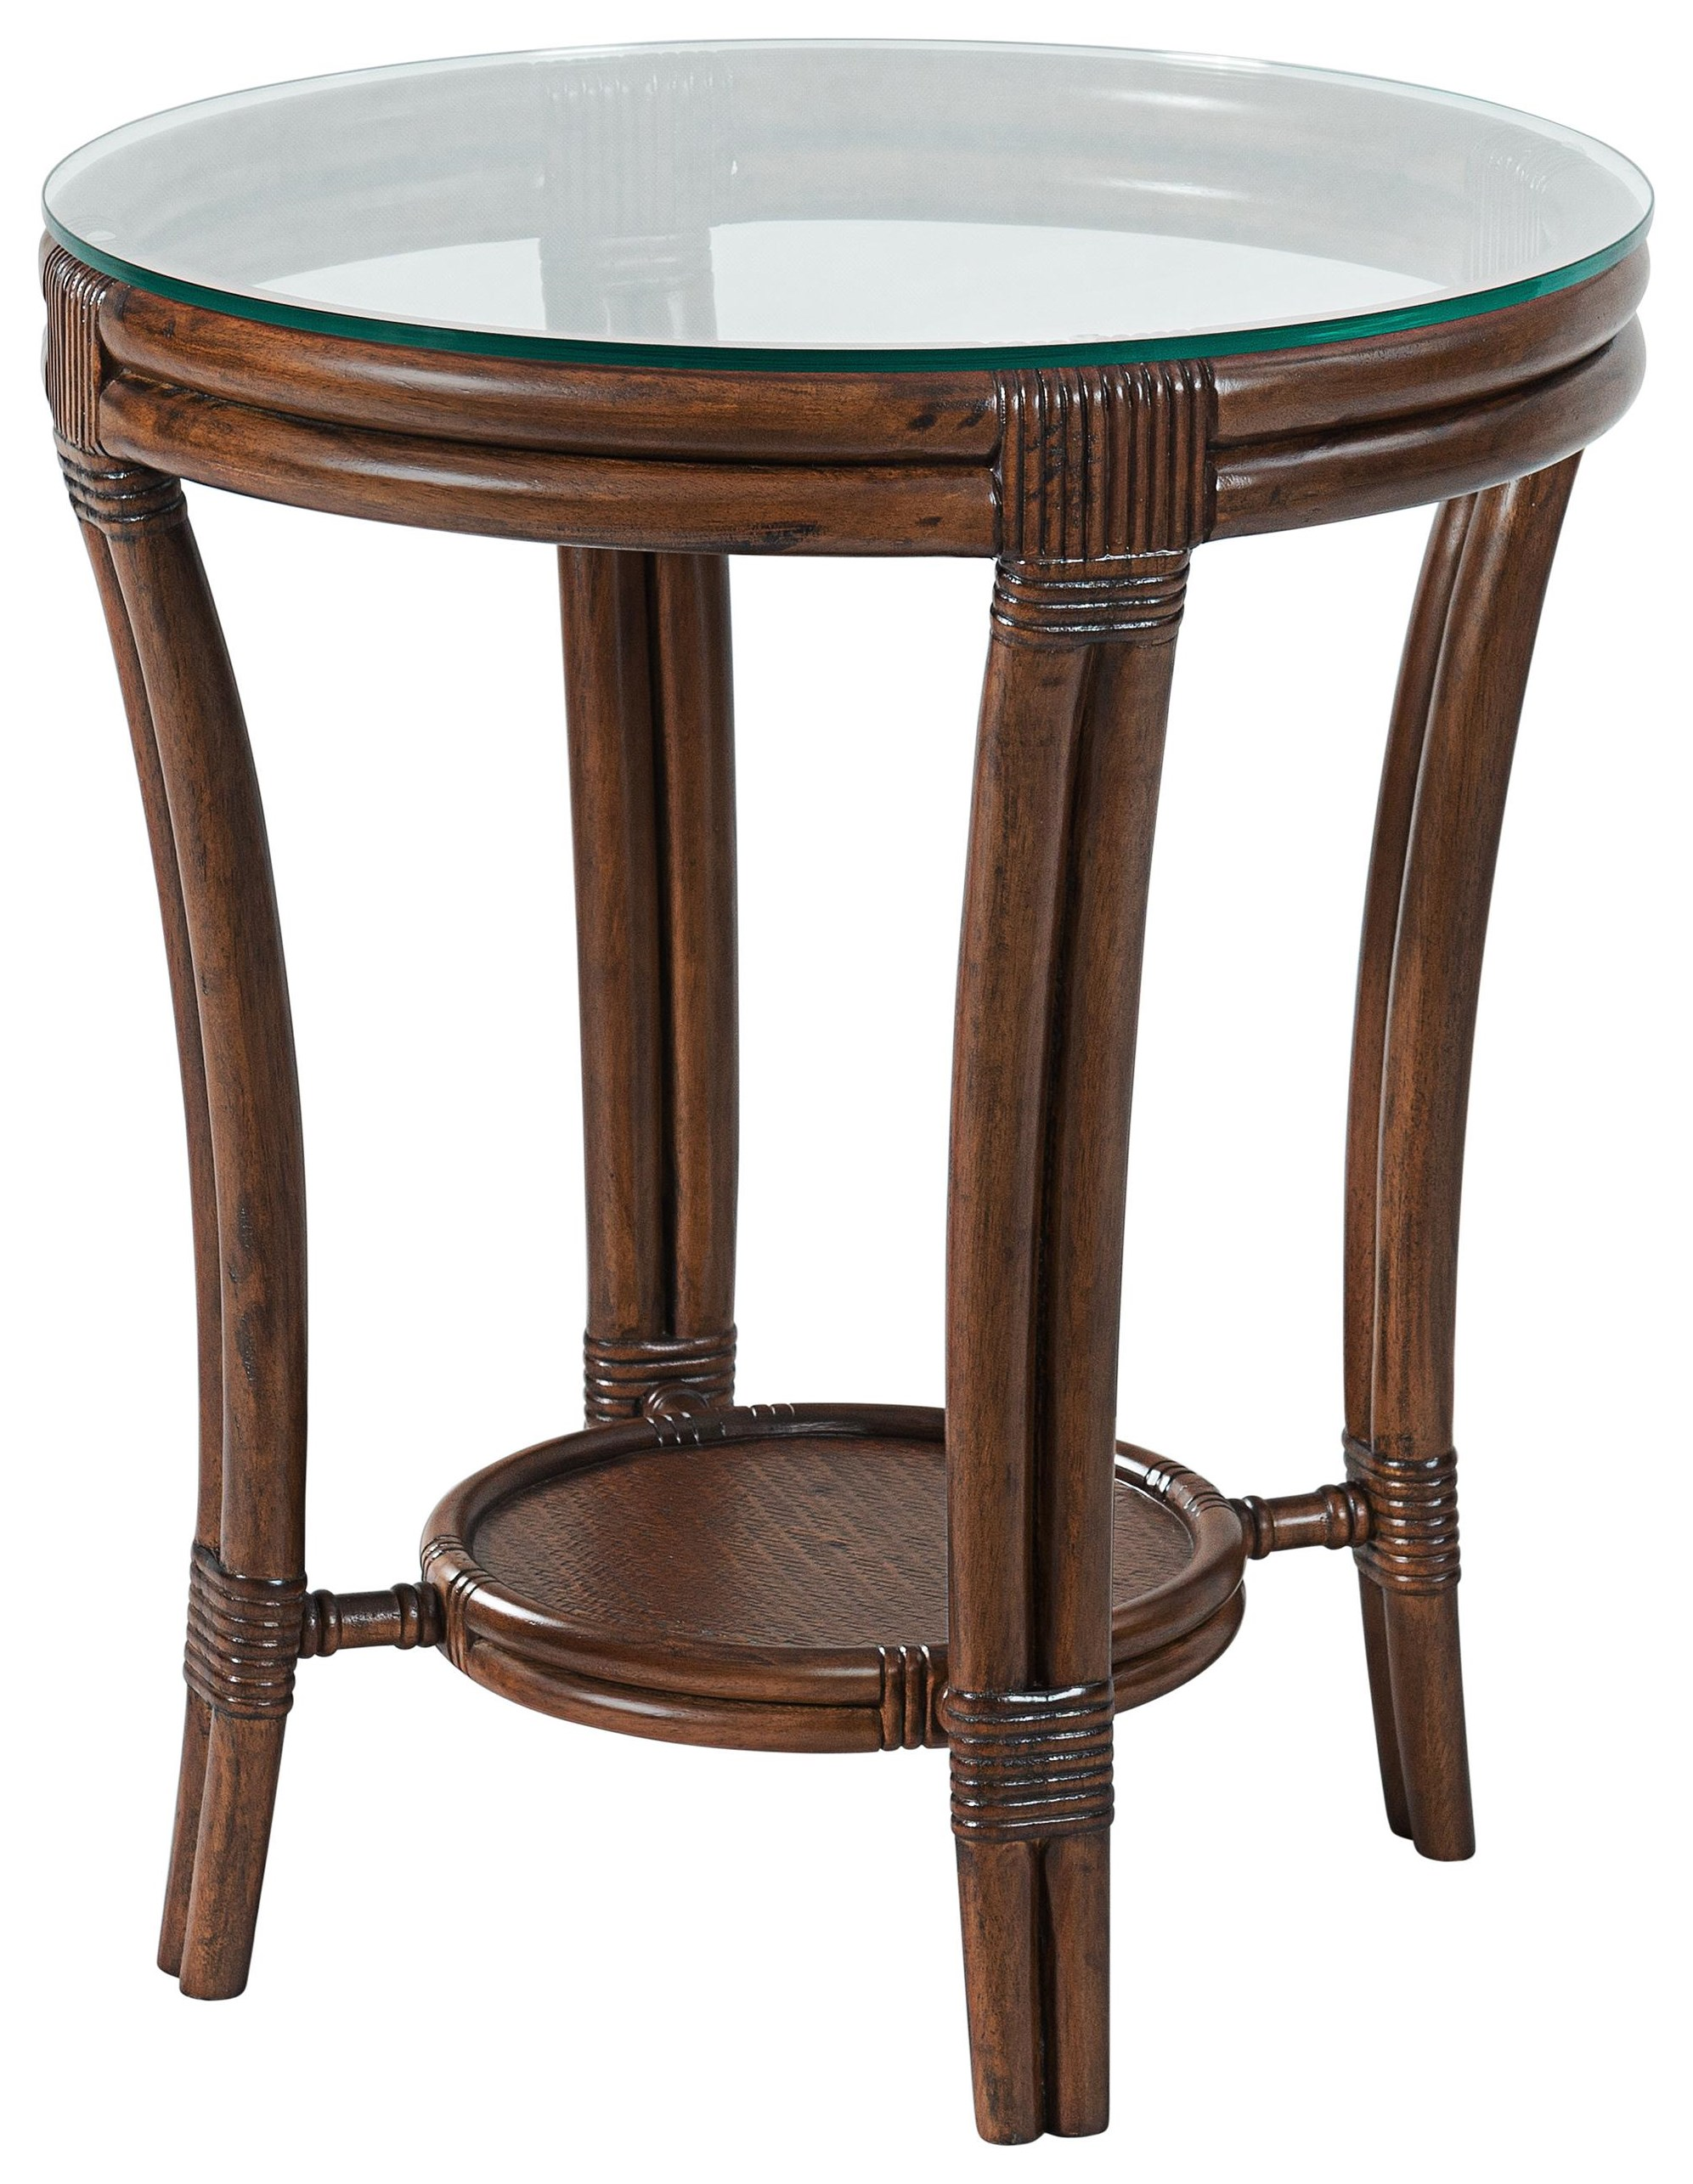 Tropical Breeze Round End Table by Stillwater Furniture at Baer's Furniture